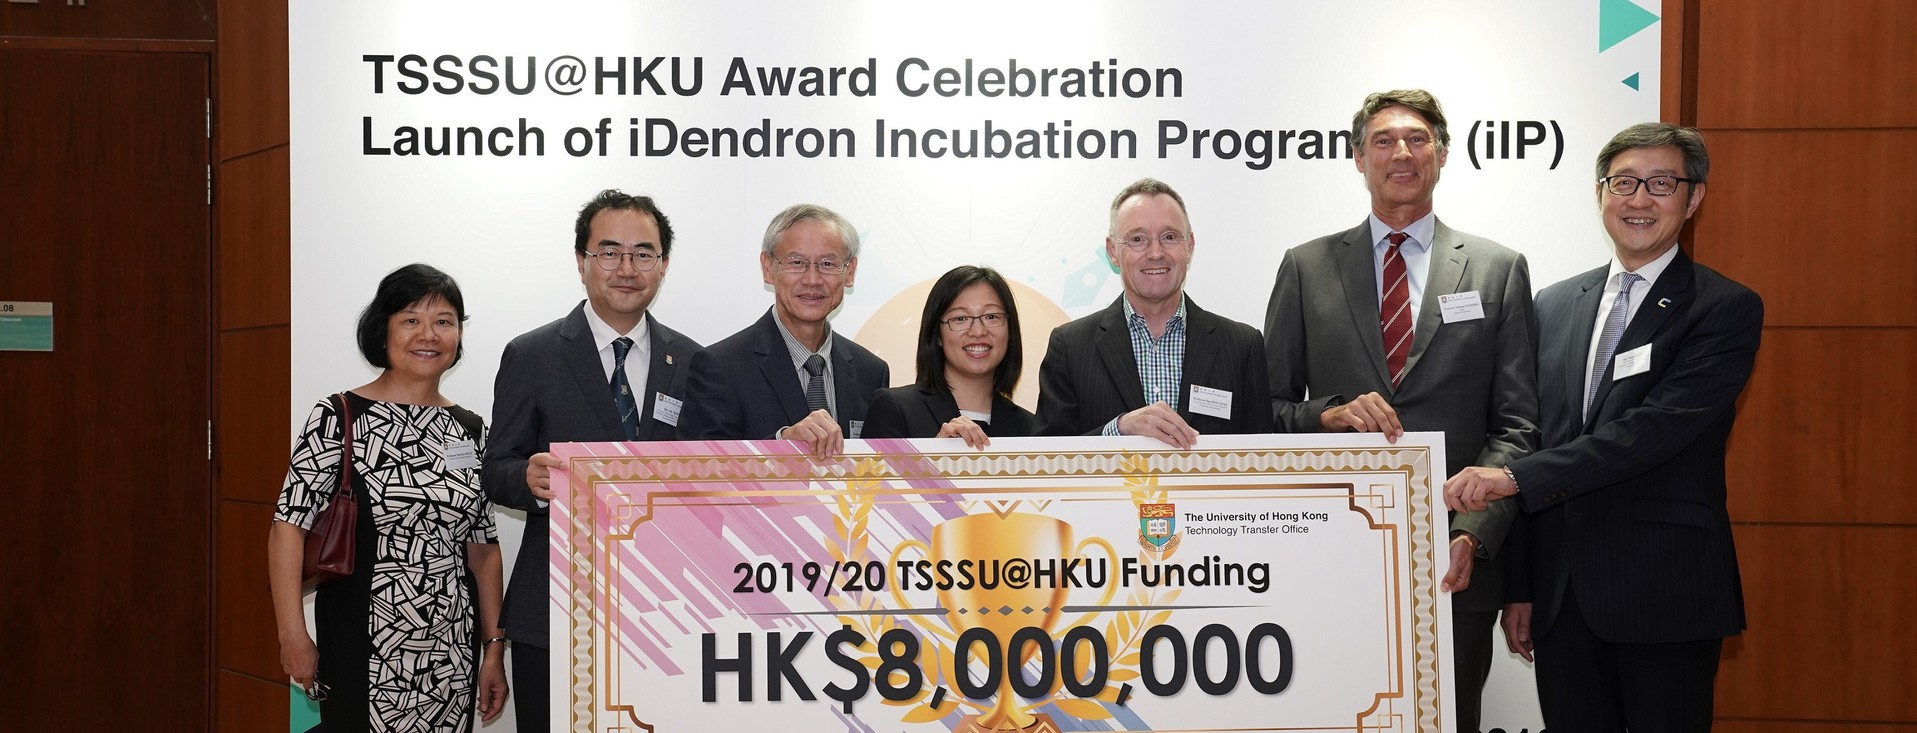 TSSSU@HKU Award Celebration x Launch of iDendron Incubation Programme